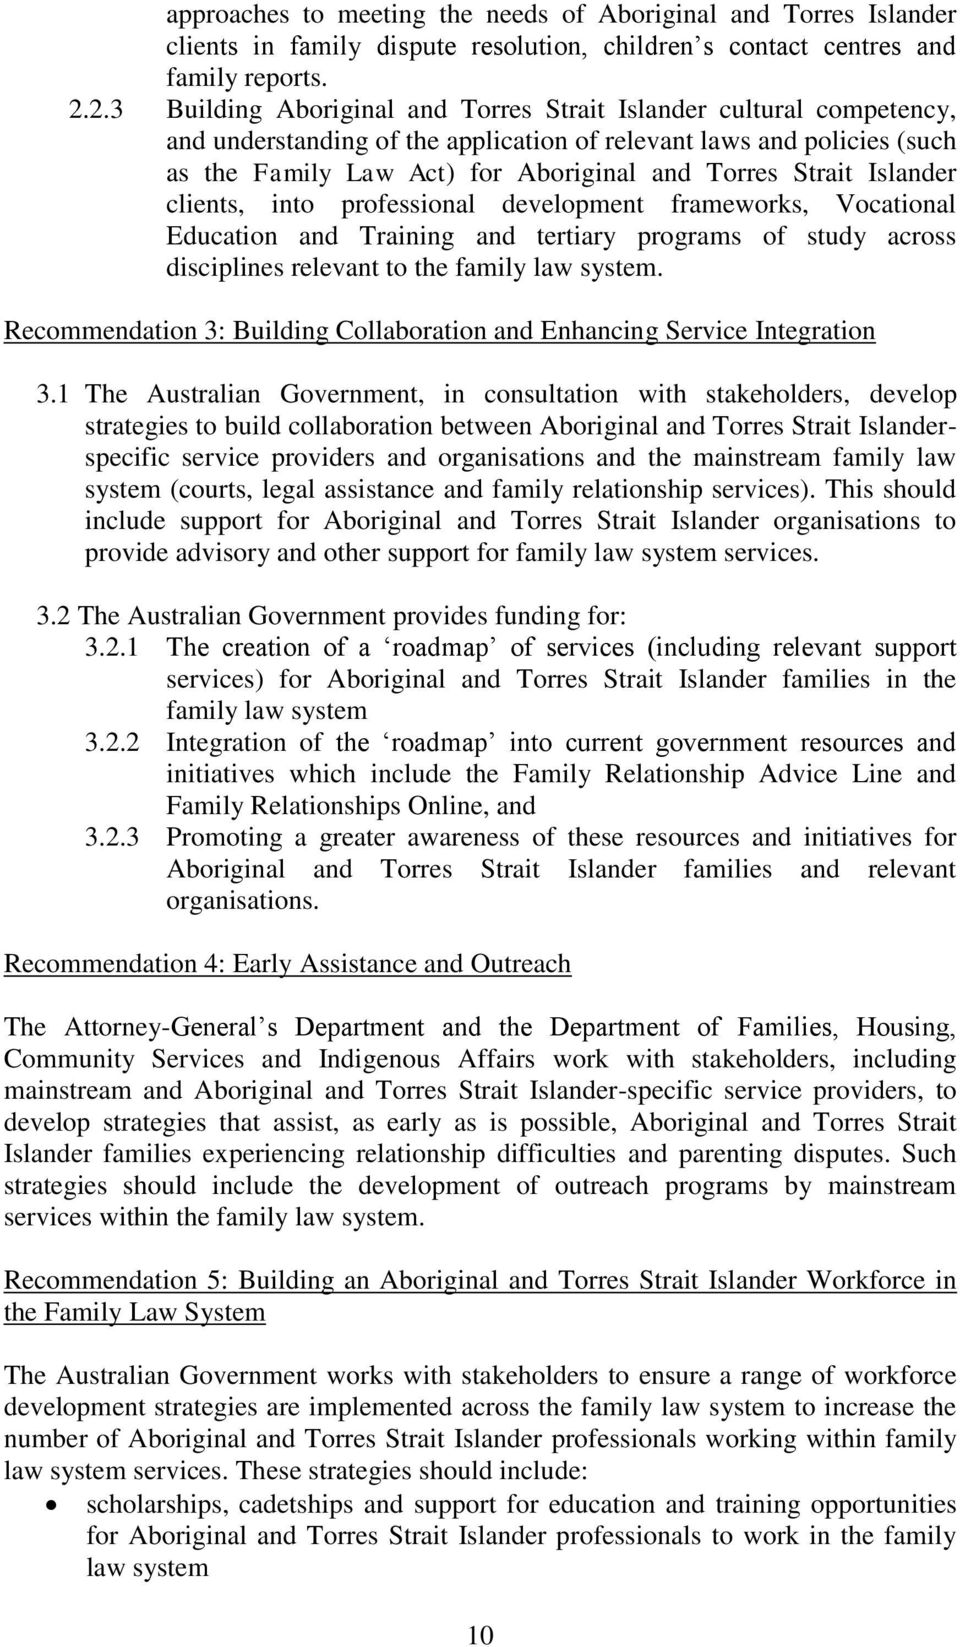 Strait Islander clients, into professional development frameworks, Vocational Education and Training and tertiary programs of study across disciplines relevant to the family law system.